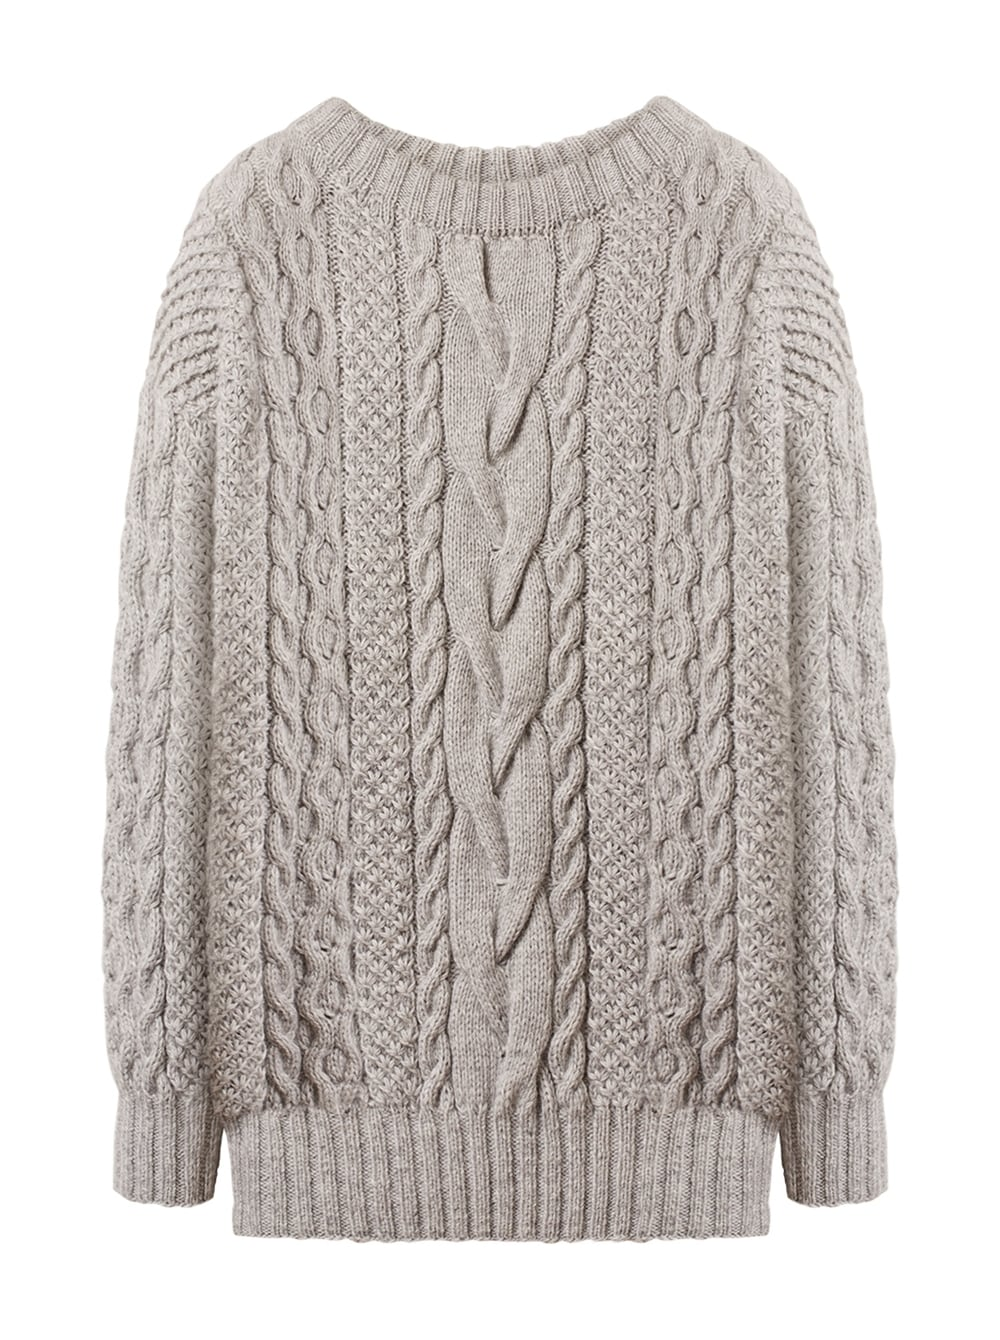 картинка CABLE KNIT SWEATER GREY - Maltseva Style